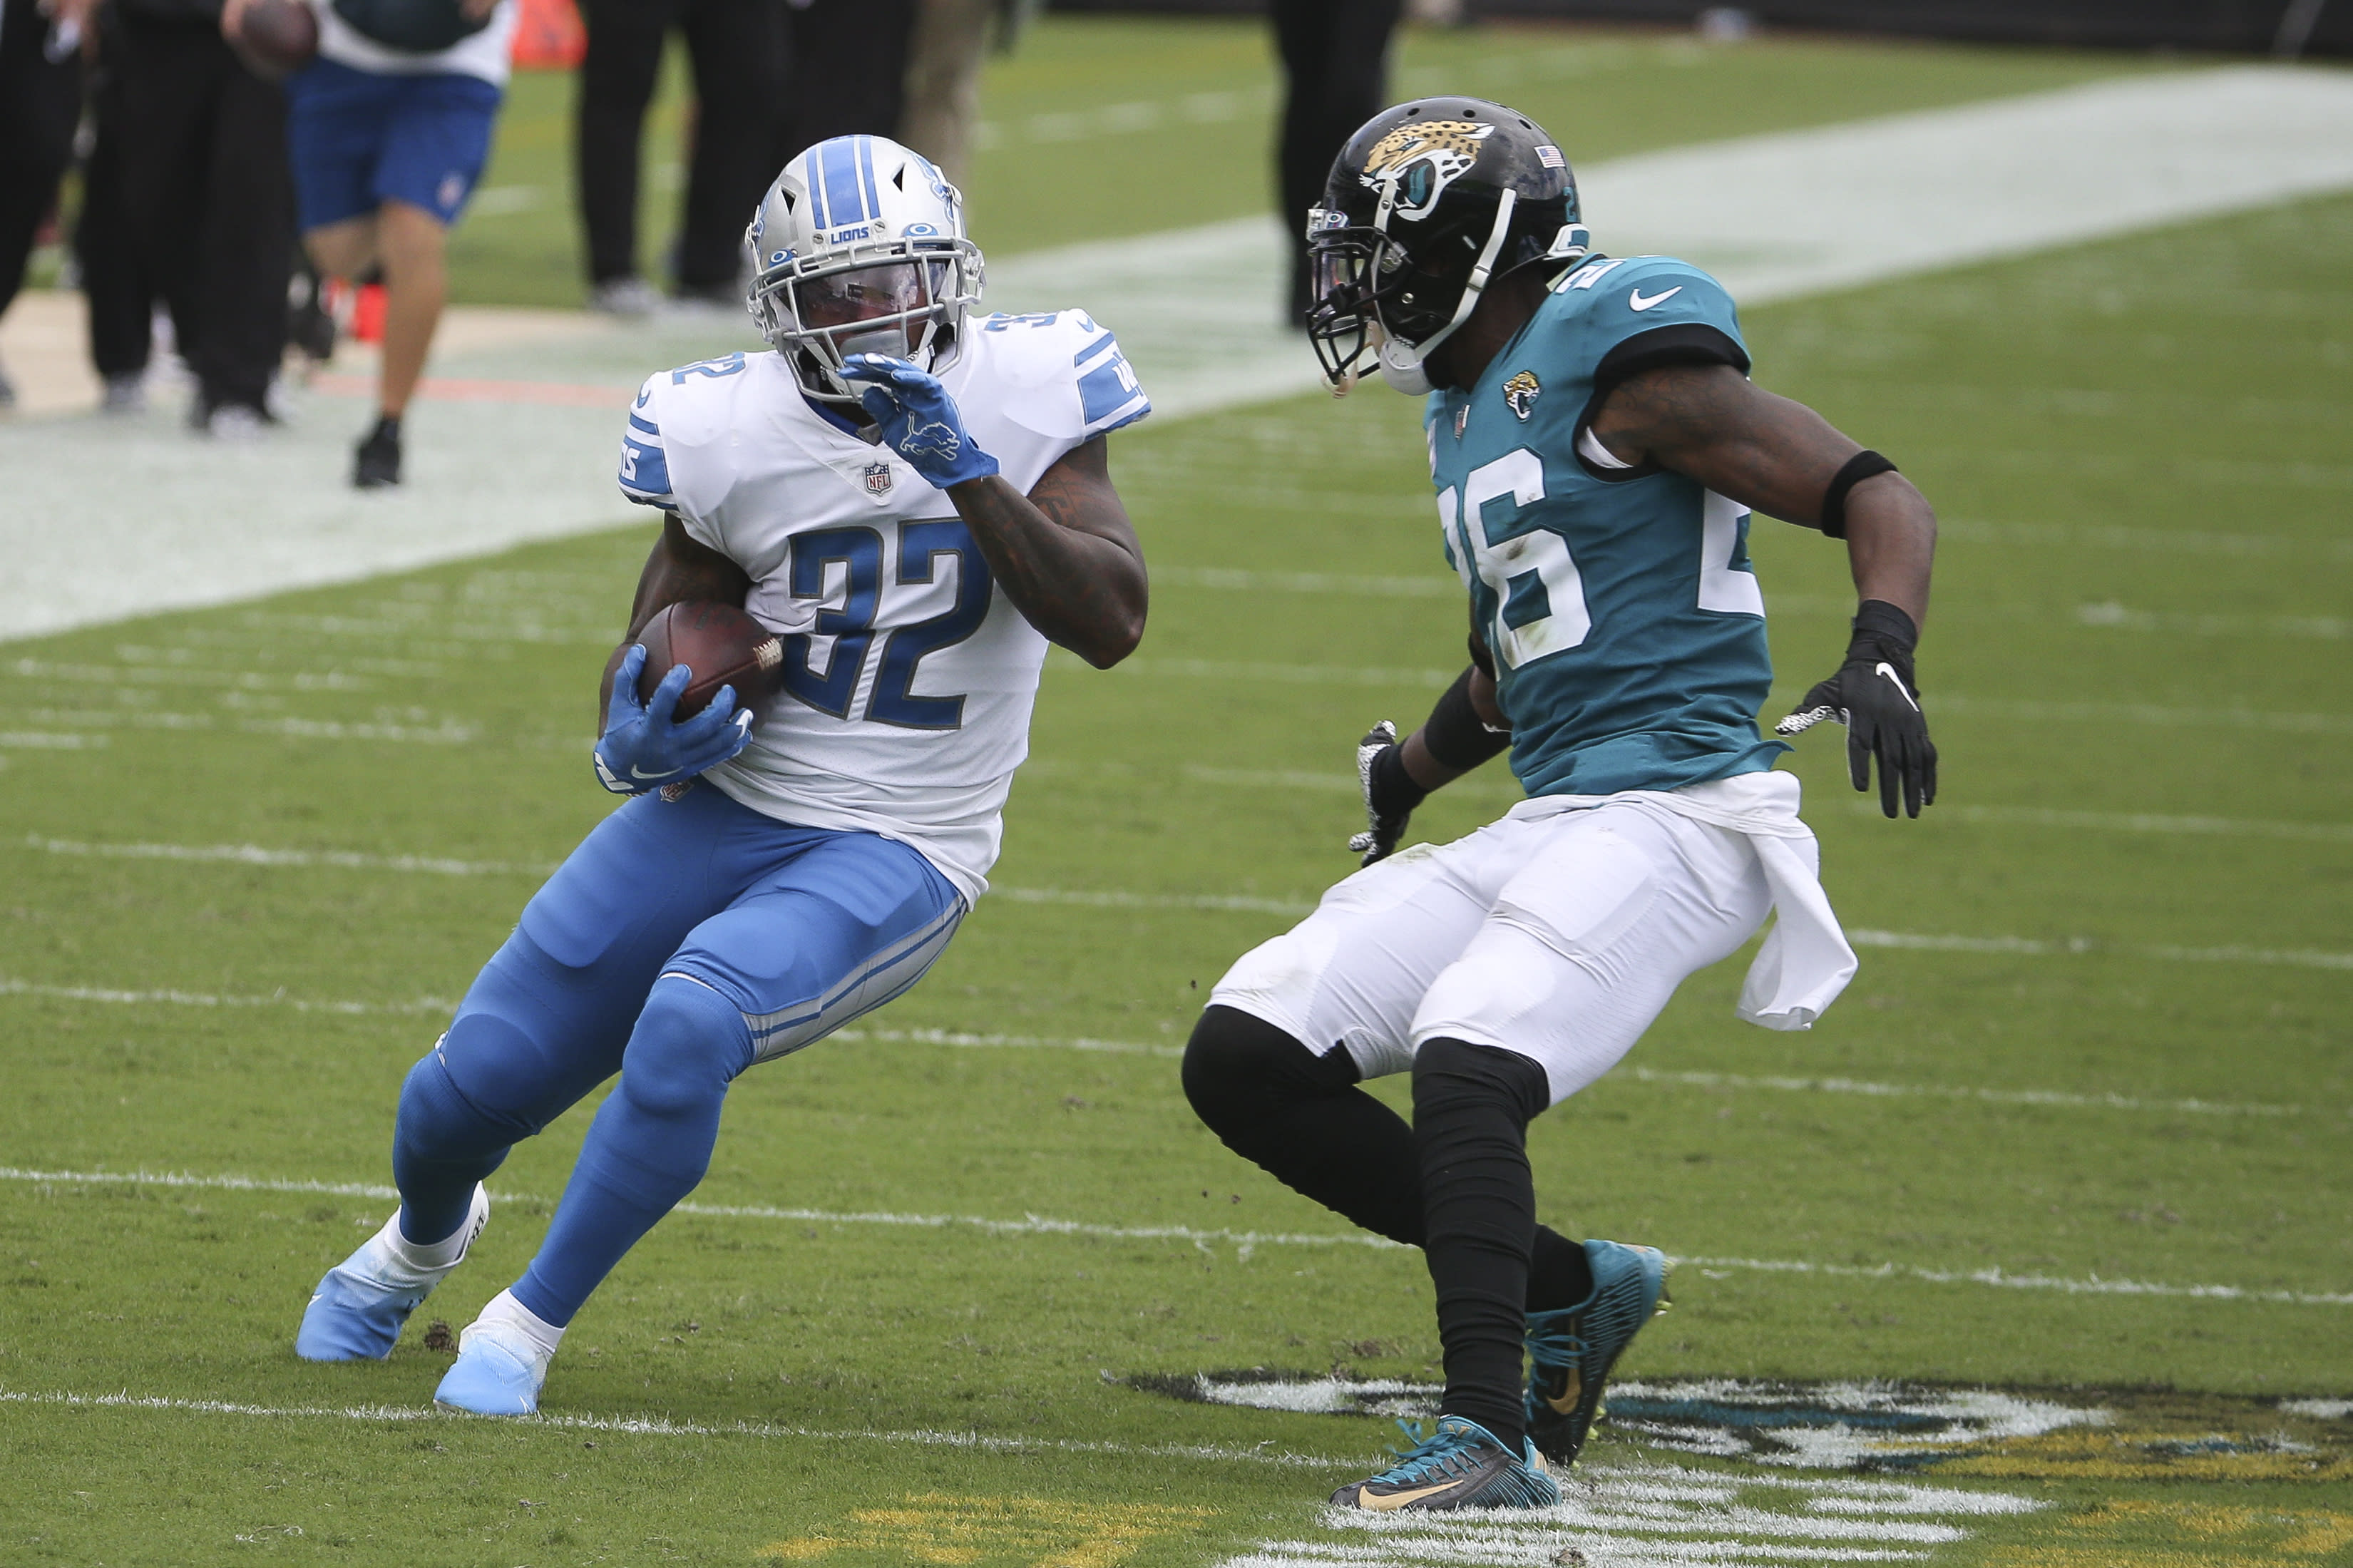 Detroit Lions running back D'Andre Swift (32) tries to avoid a tackle by Jacksonville Jaguars safety Jarrod Wilson, right, during the first half of an NFL football game, Sunday, Oct. 18, 2020, in Jacksonville, Fla. (AP Photo/Stephen B. Morton)